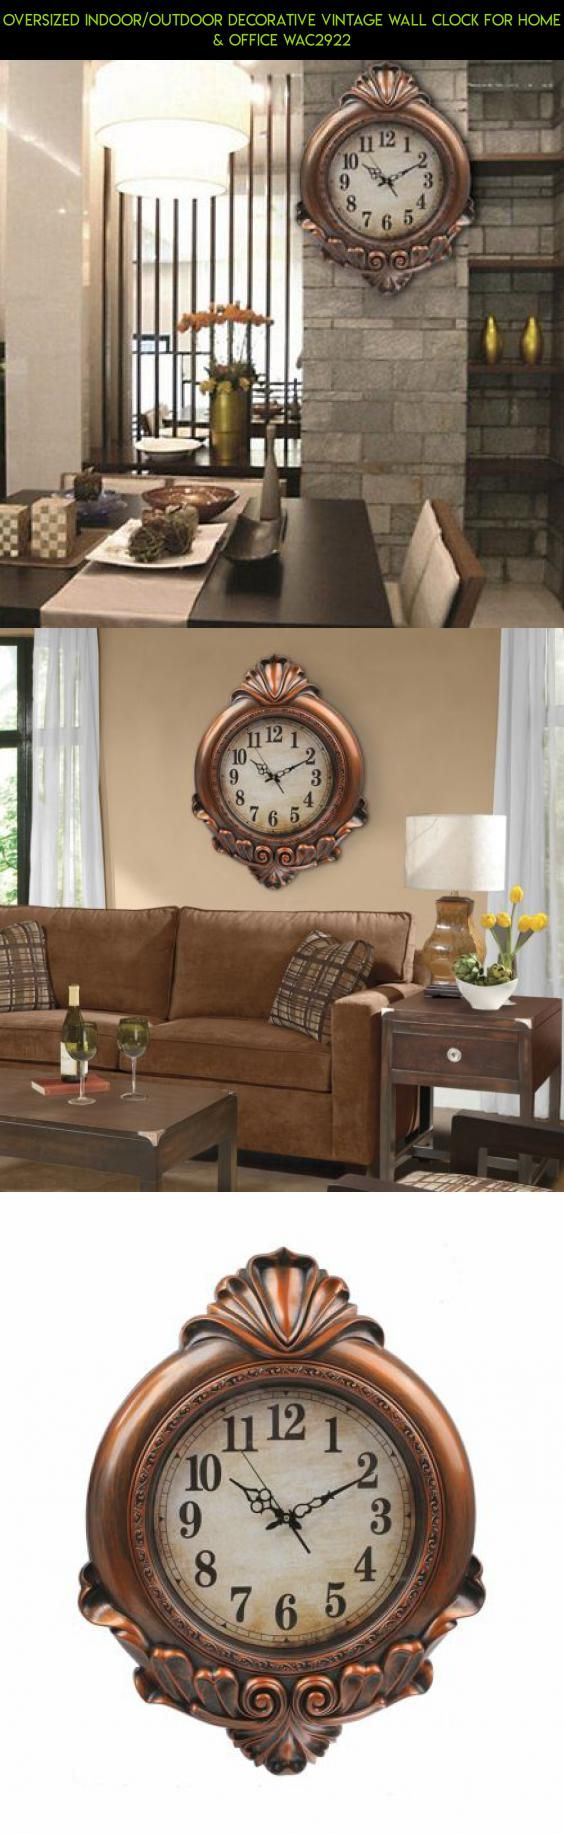 Oversized Indoor/Outdoor Decorative Vintage Wall Clock for Home & Office WAC2922 #kit #plans #technology #gadgets #shopping #parts #outdoor #wall #decorations #fpv #drone #products #camera #tech #racing #for